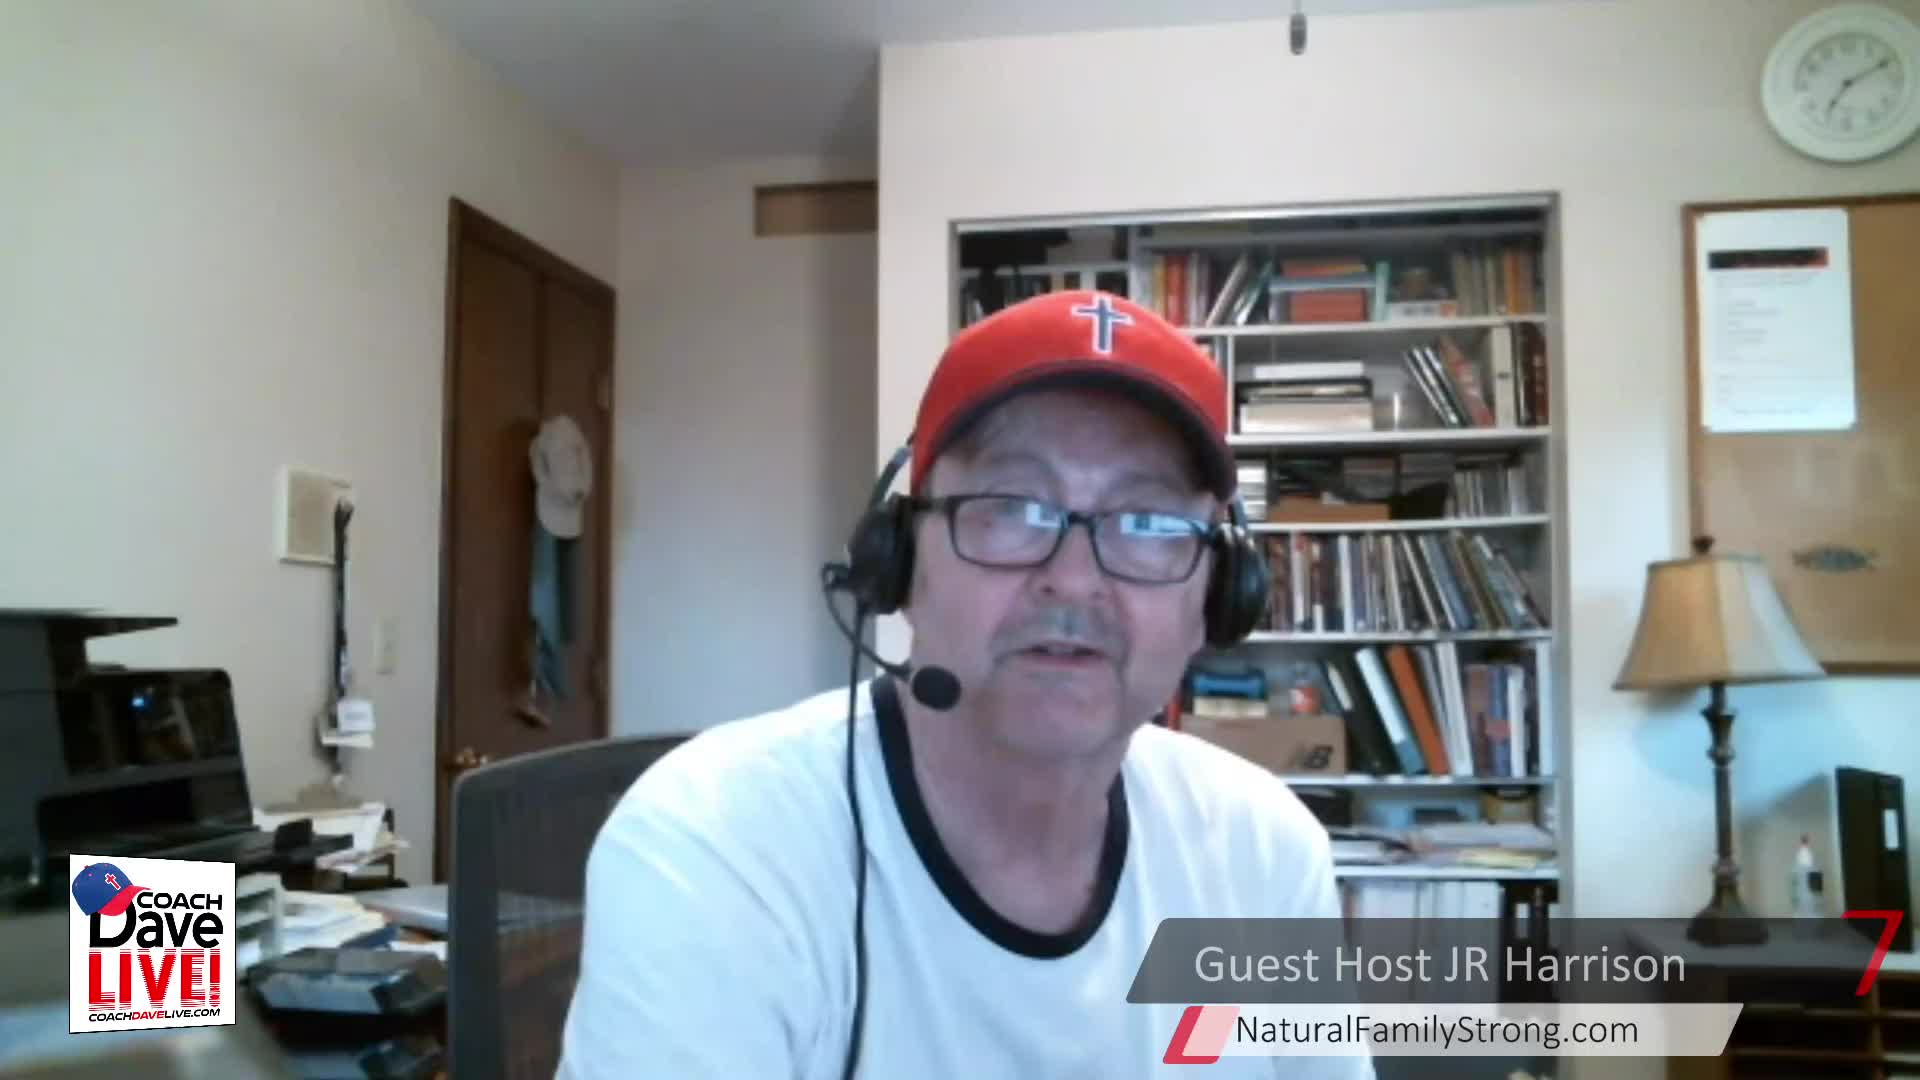 Coach Dave LIVE | 5-21-2021 | FFF: GUEST HOST JR HARRISON ON FAMILY